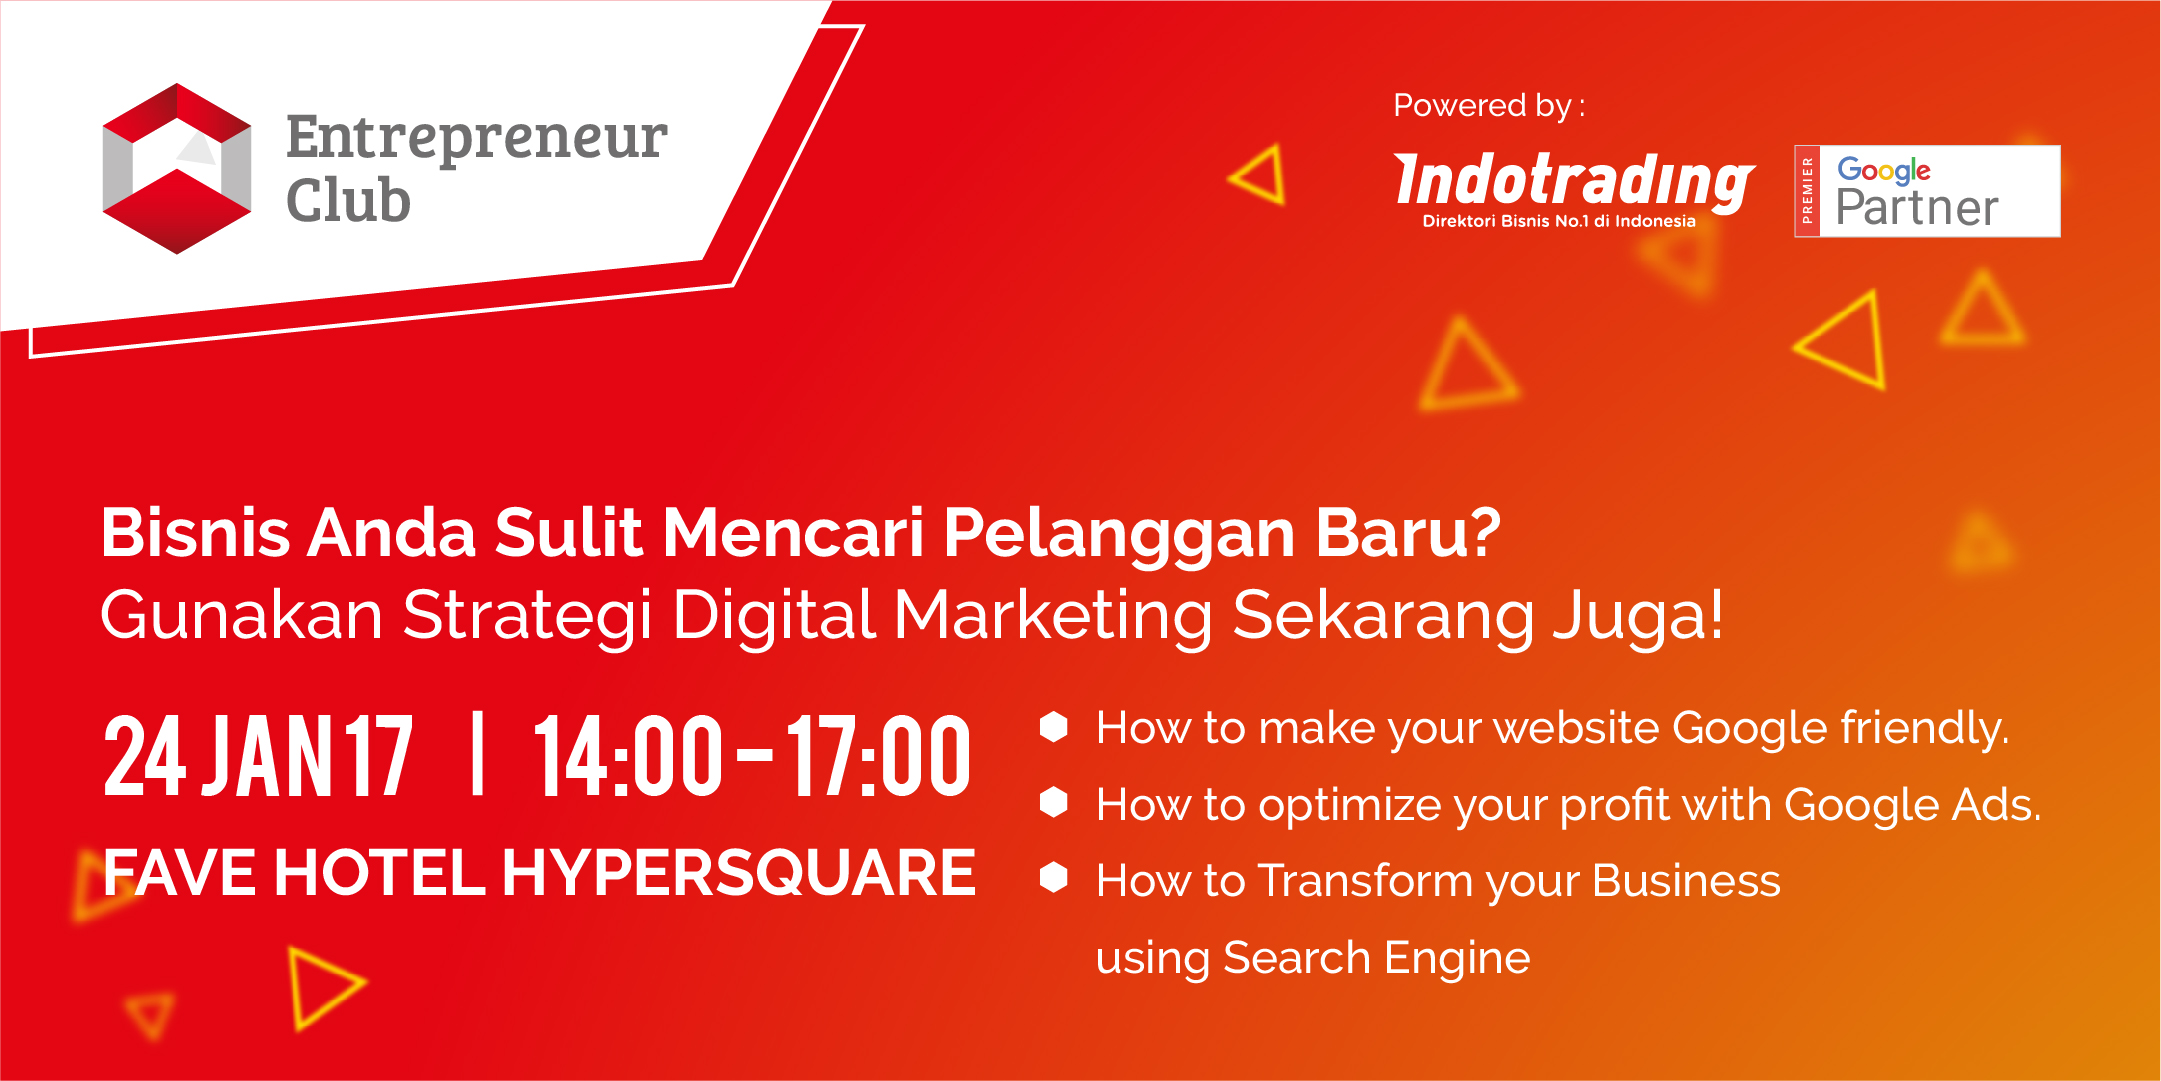 Mengapa Digital Marketing Sangat Penting?